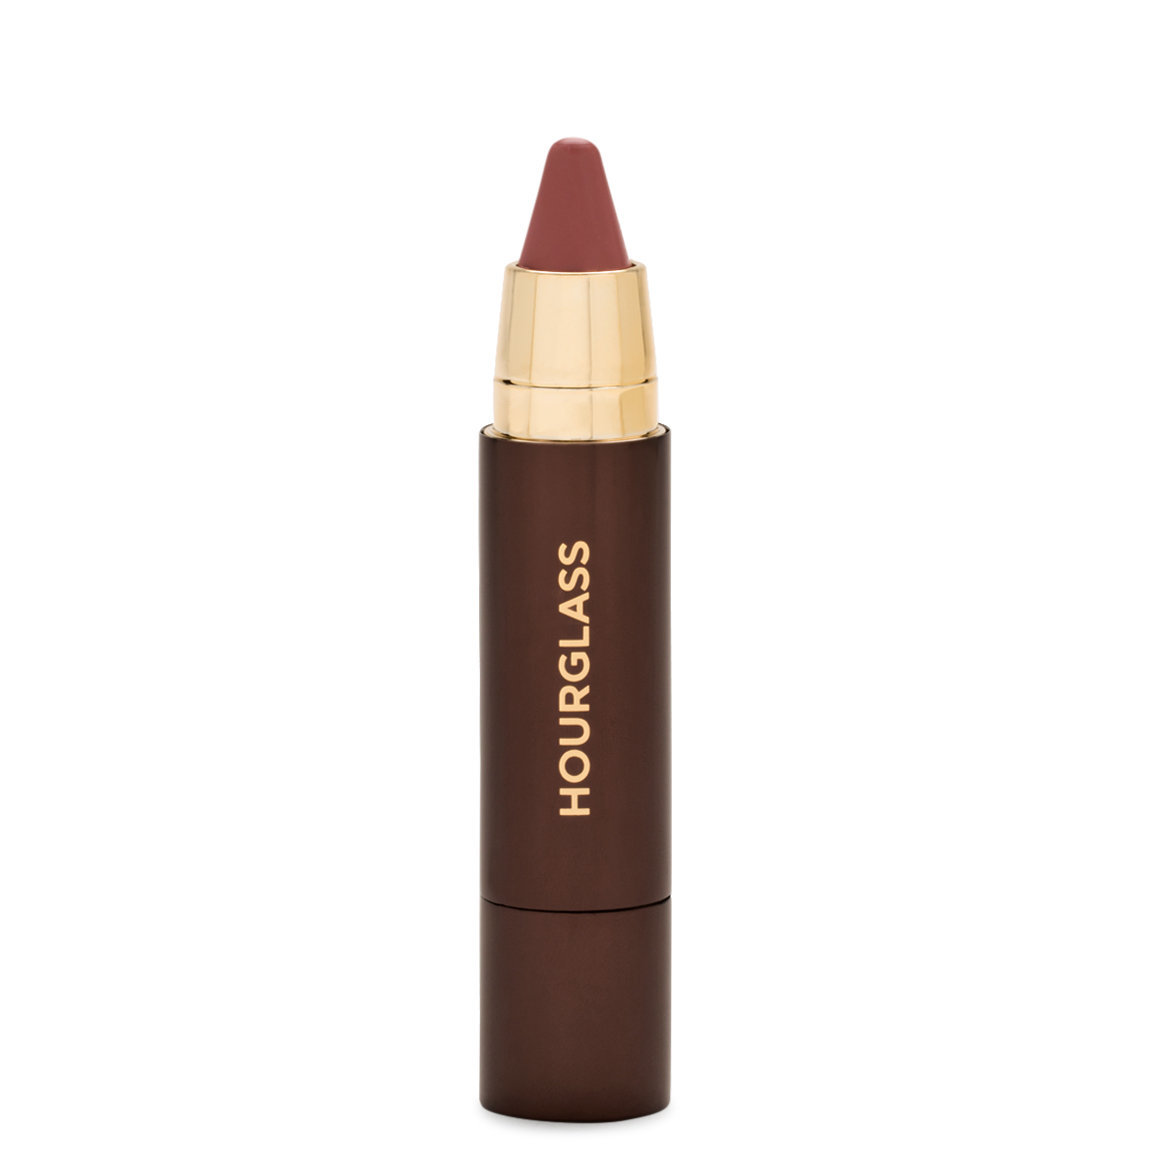 Hourglass GIRL Lip Stylo Achiever alternative view 1.